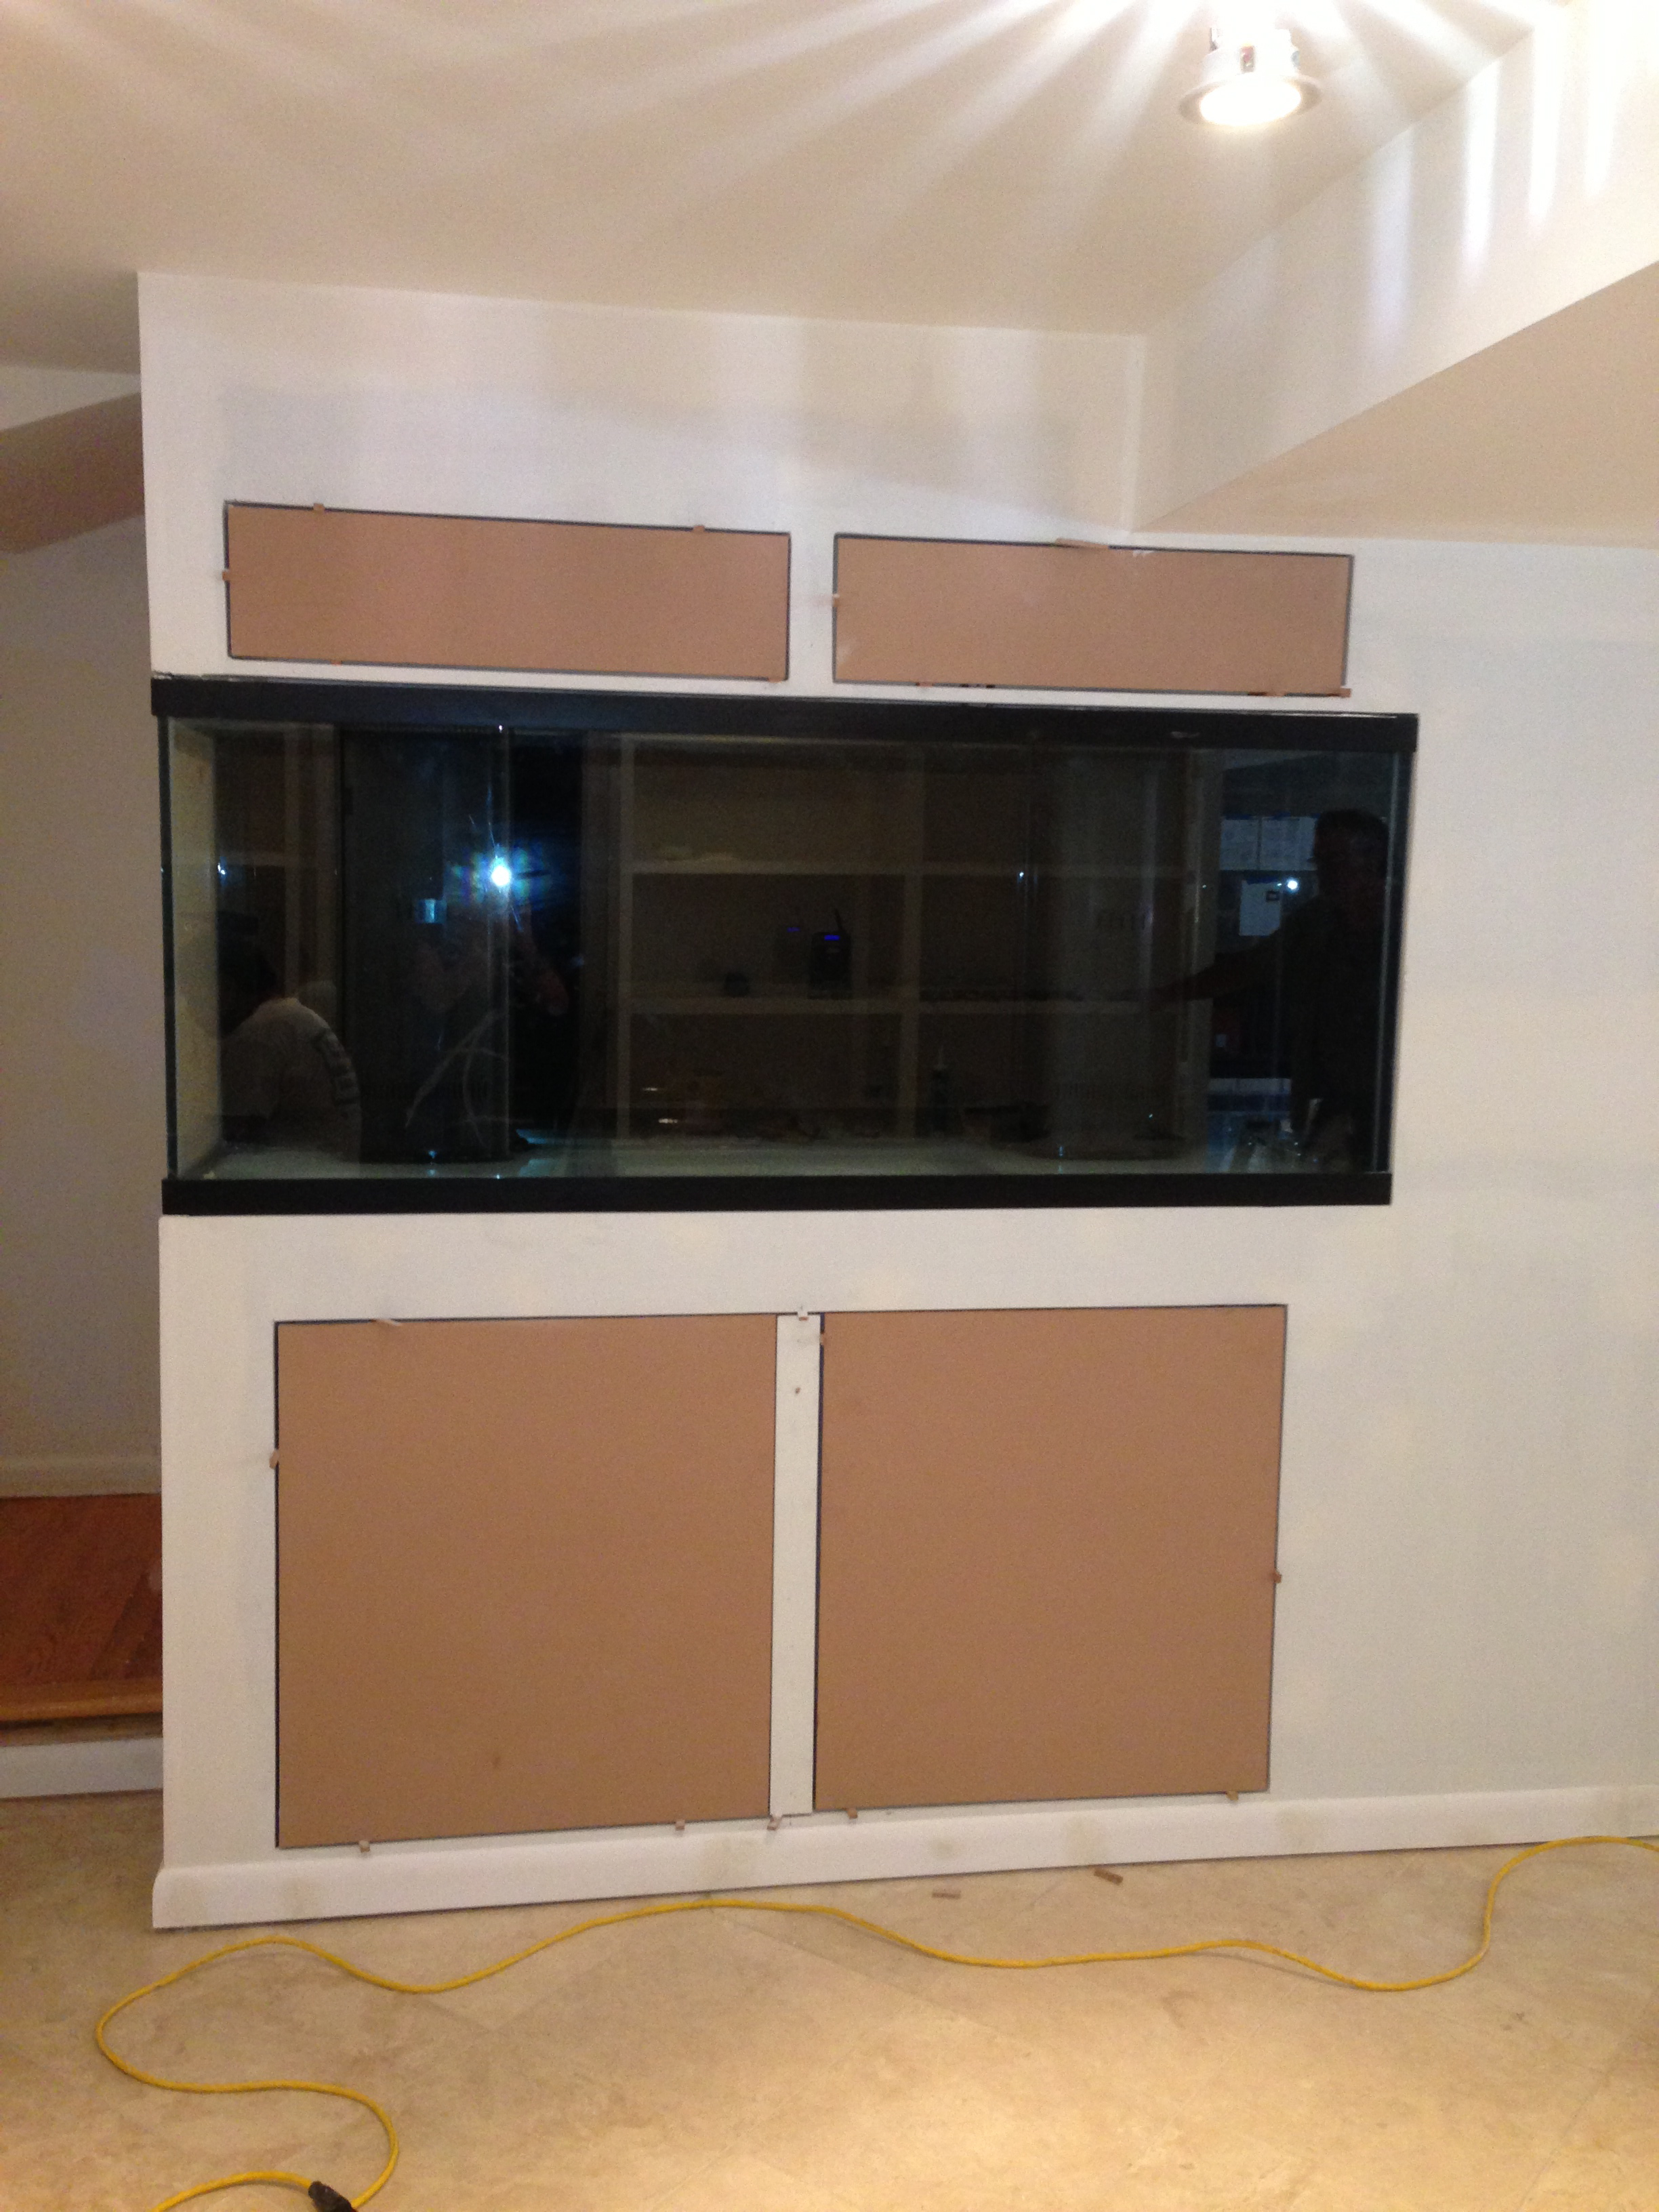 Shot of aquarium and cabinets under construction